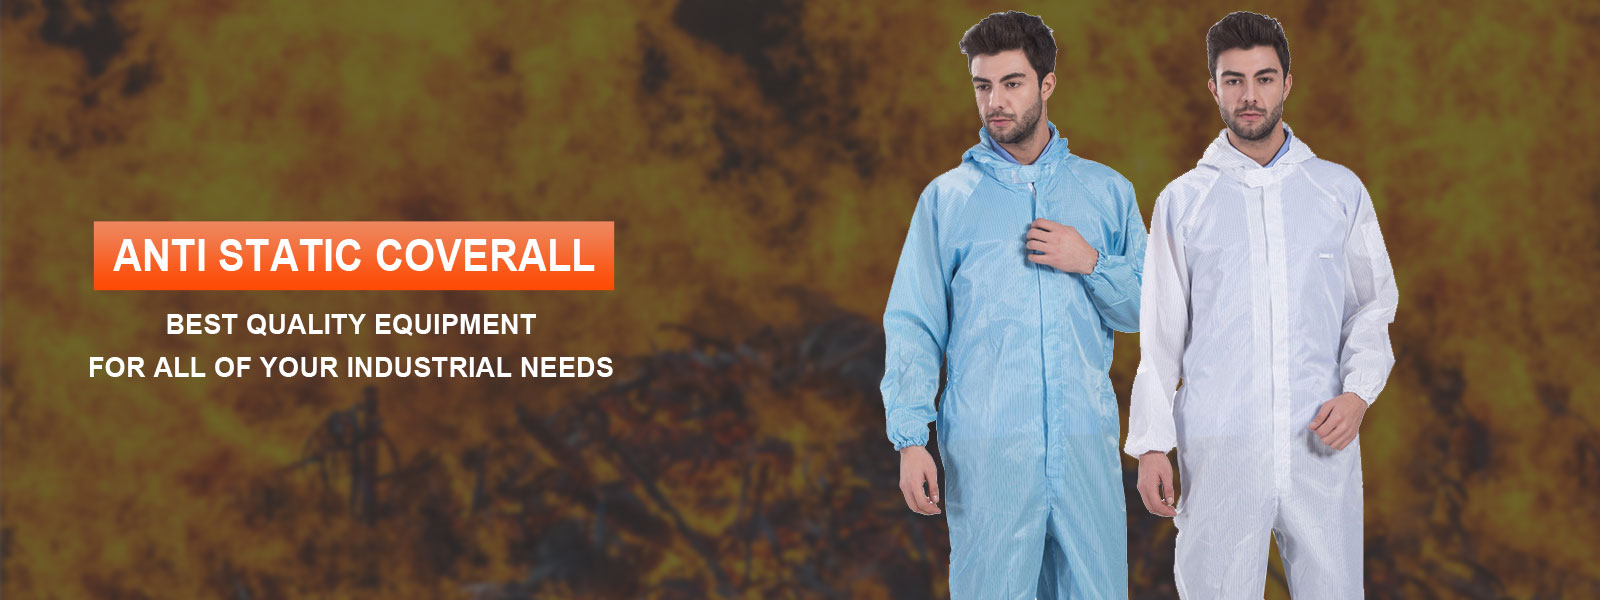 Anti Static Coverall Manufacturers in Iraq